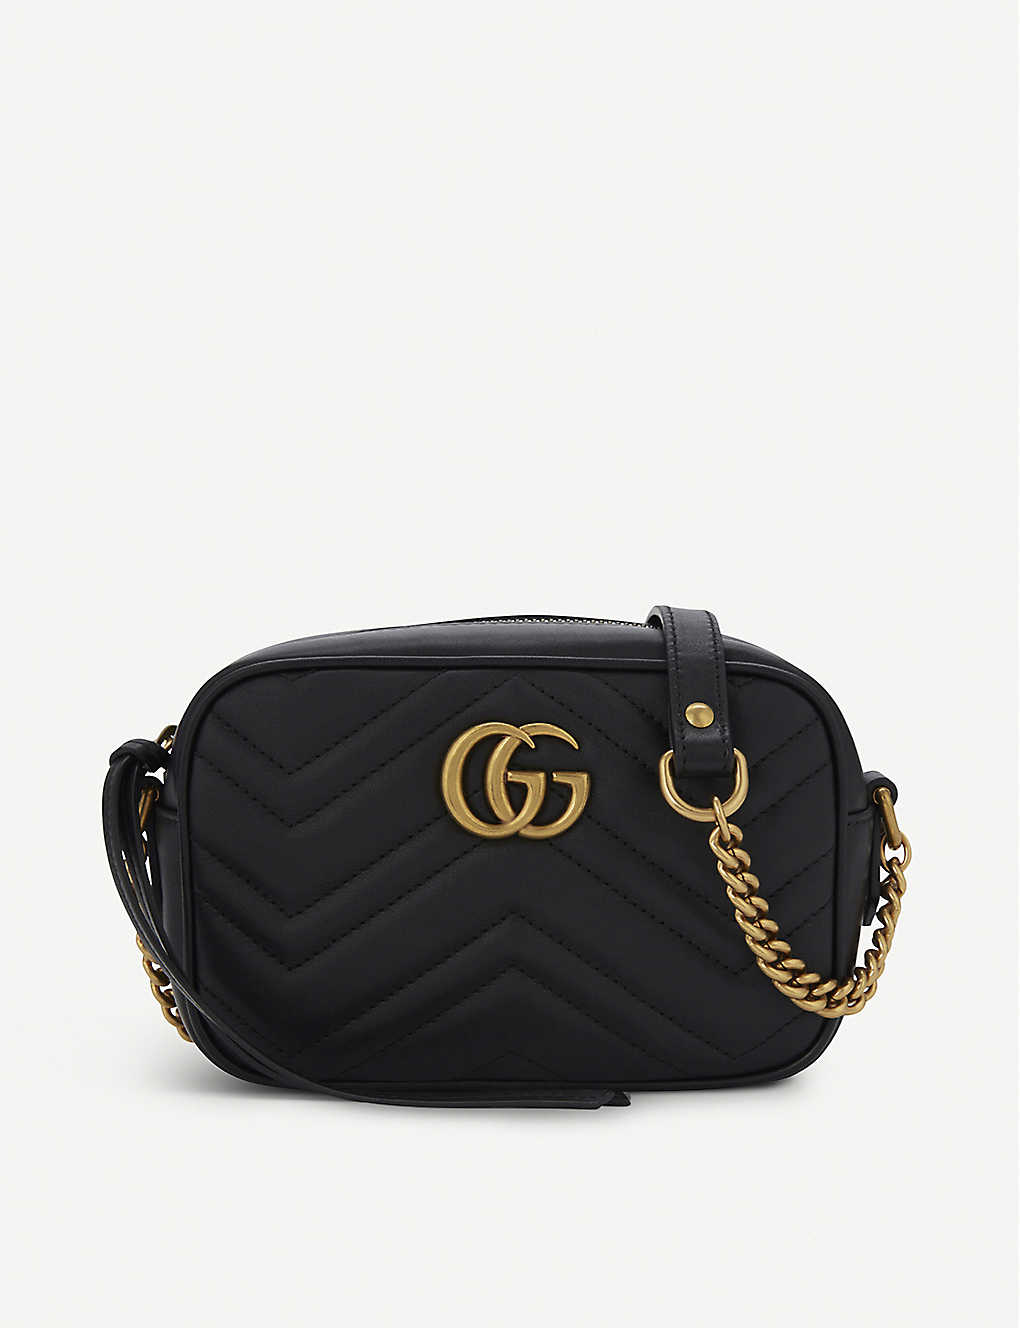 9111a1cbf2ca GUCCI - GG Marmont mini quilted leather cross-body bag | Selfridges.com